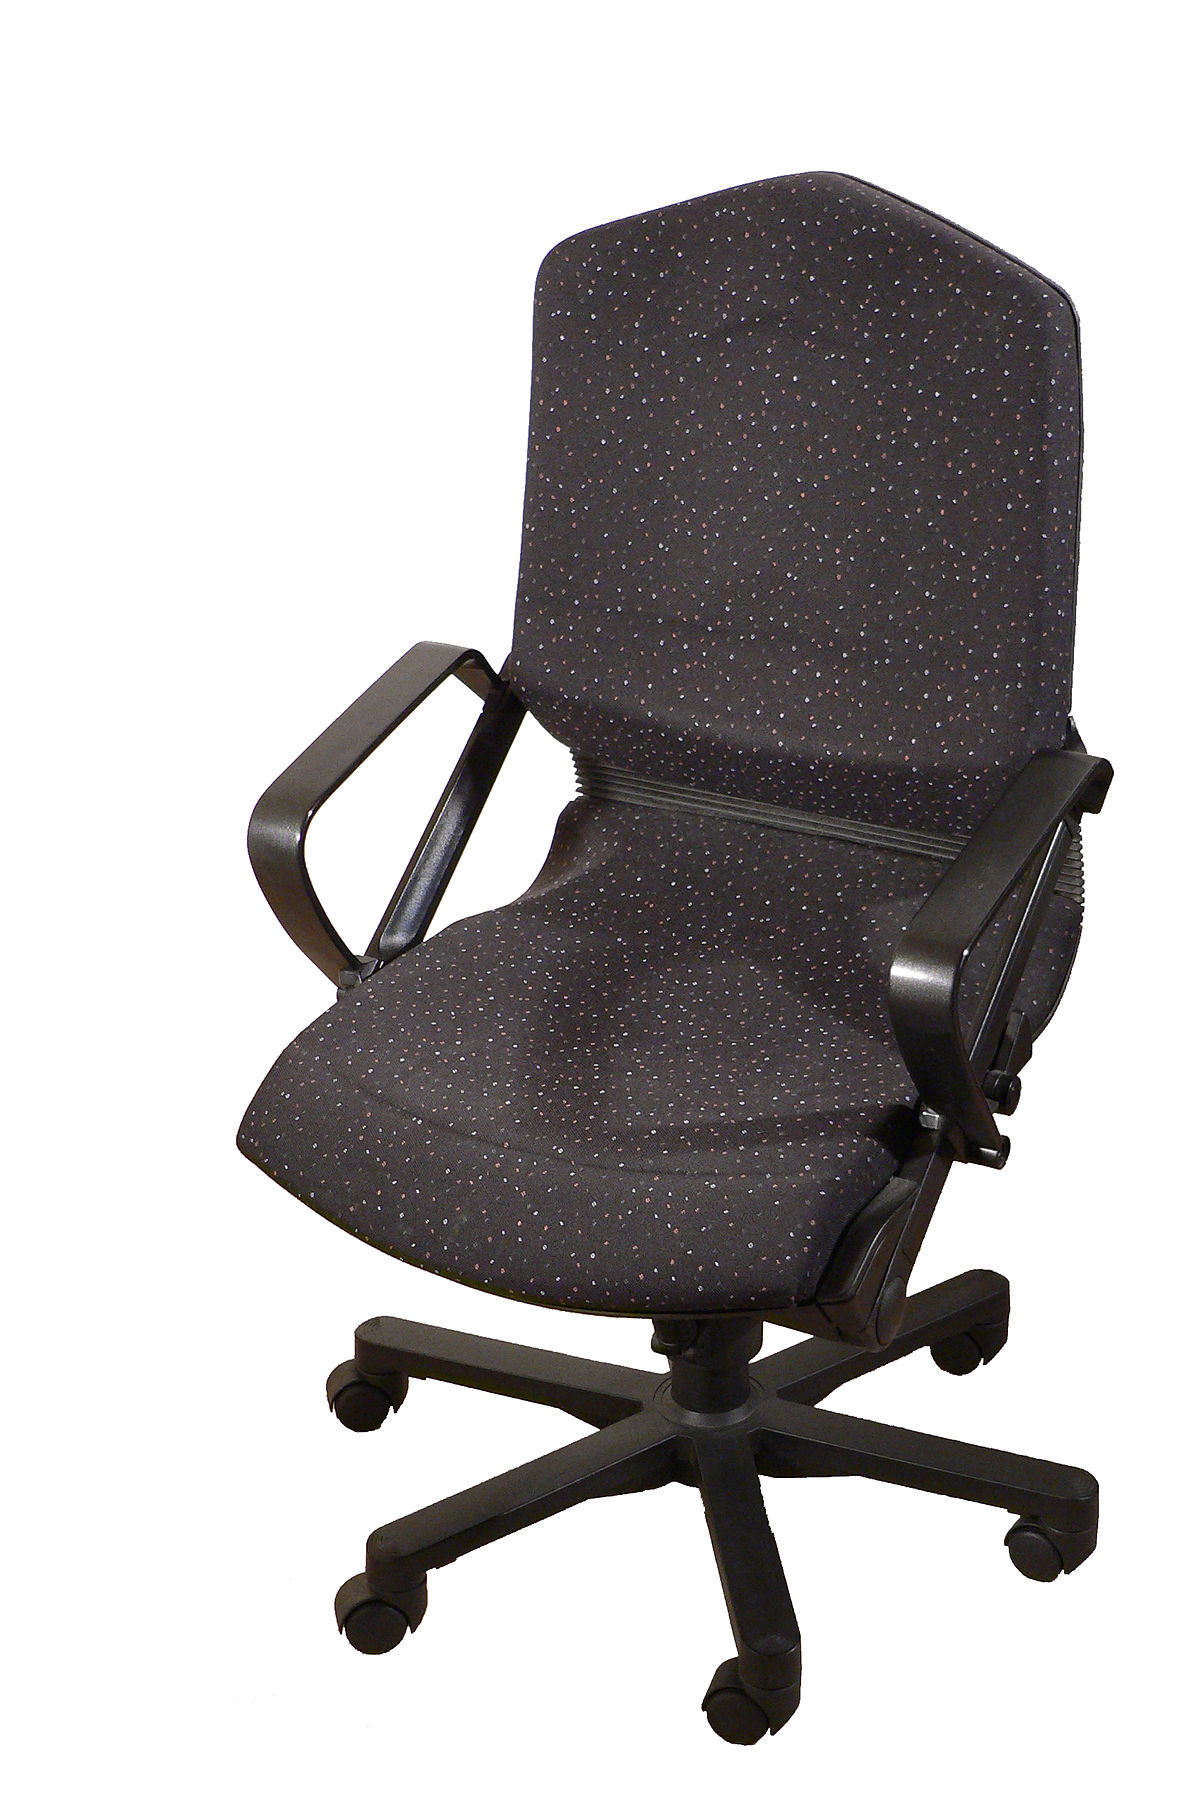 used office chairs minnie mouse chair - wiktionary